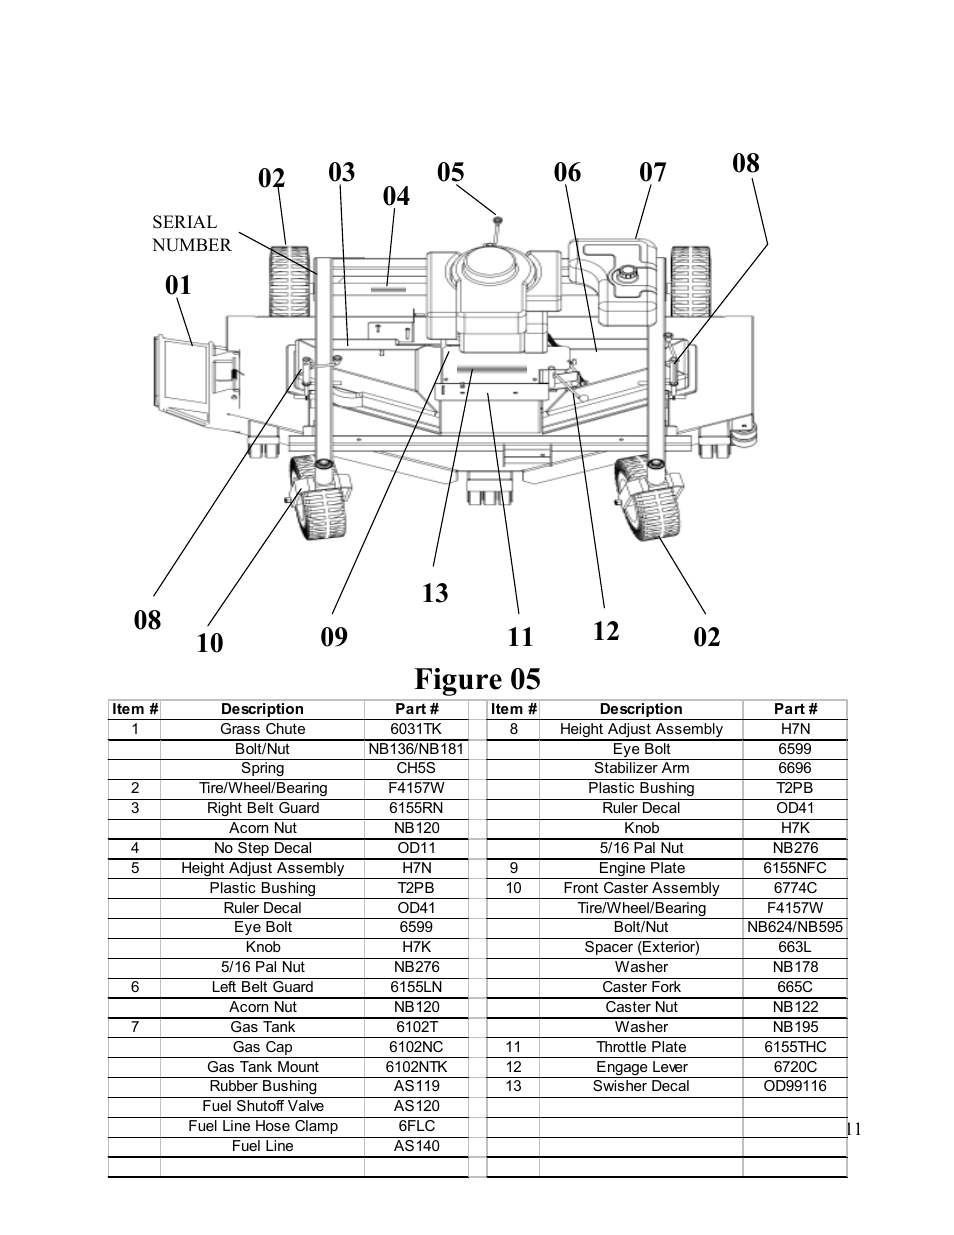 Swisher Wiring Diagram Library Bush Hog Schematics T1260 T1360 Ferris Mower Figure 05